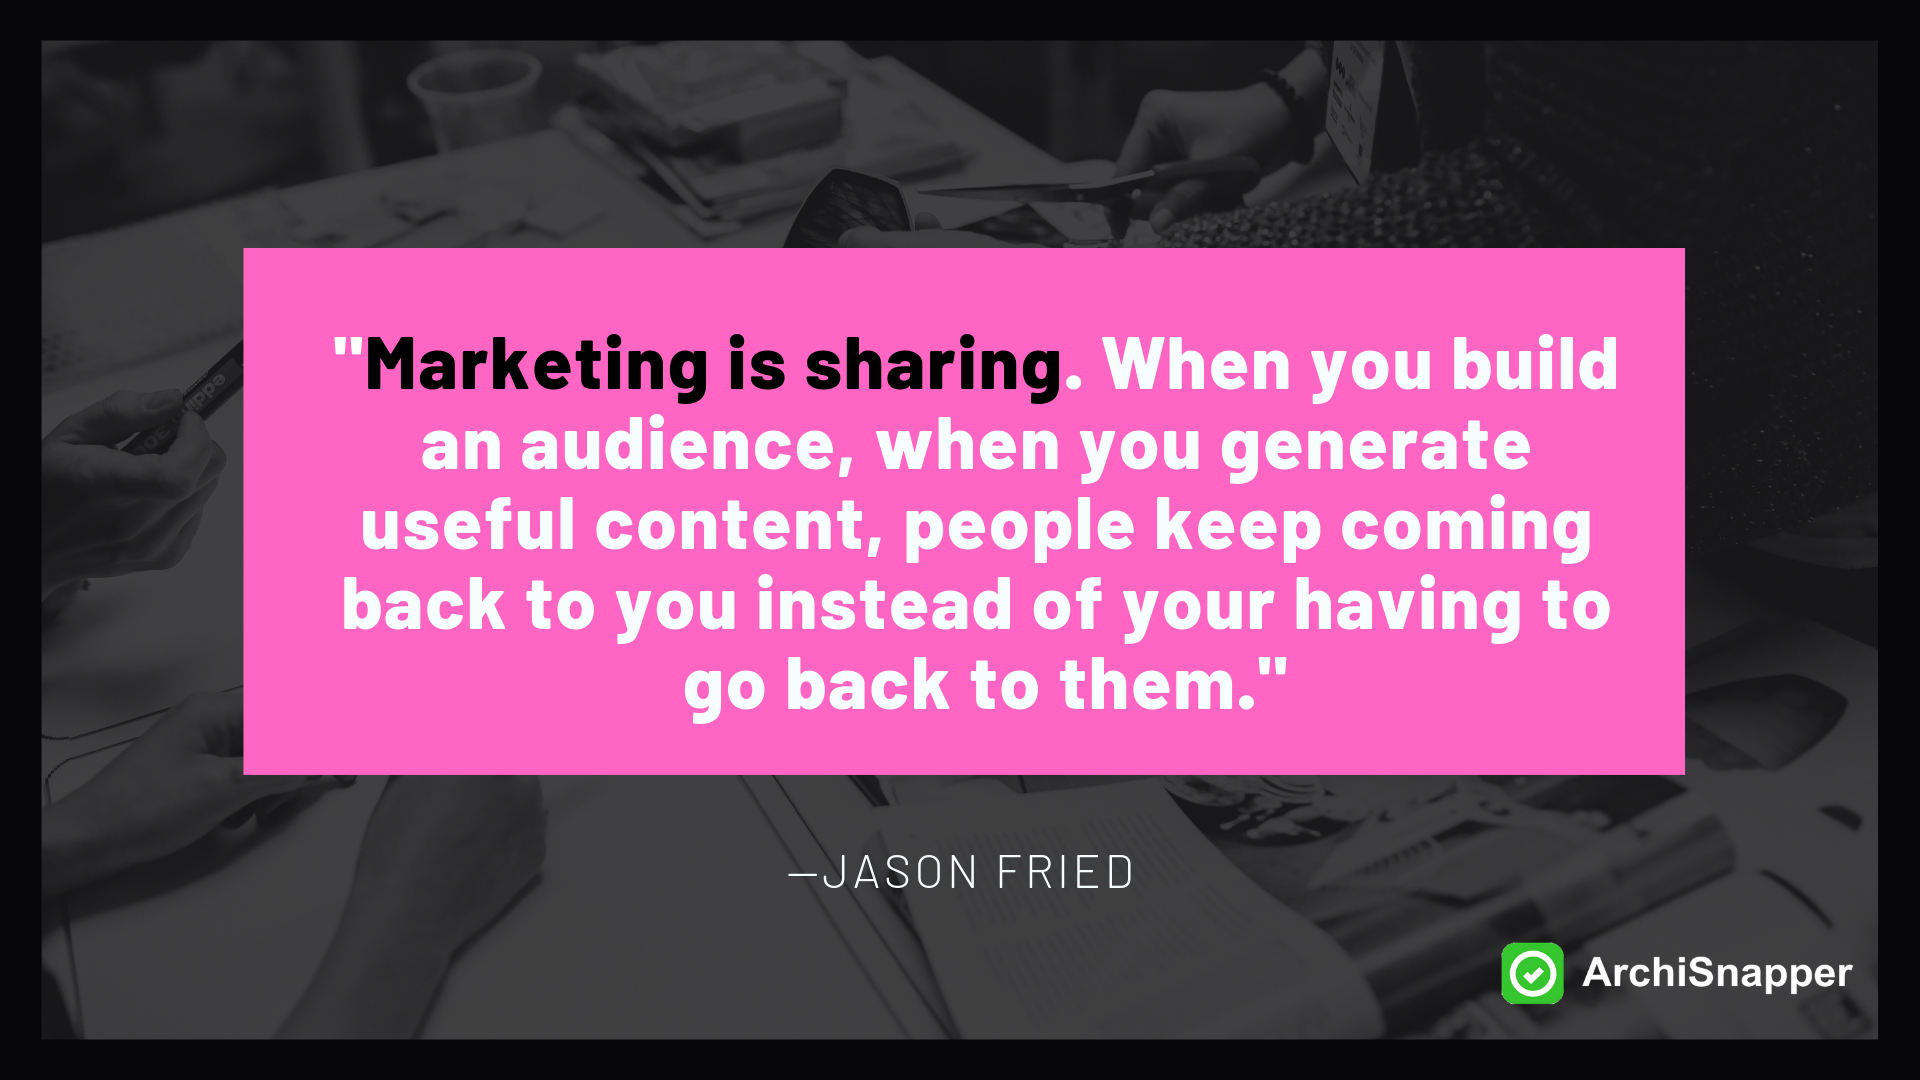 Marketing is sharing quote by Jason Fried | Archisnapper